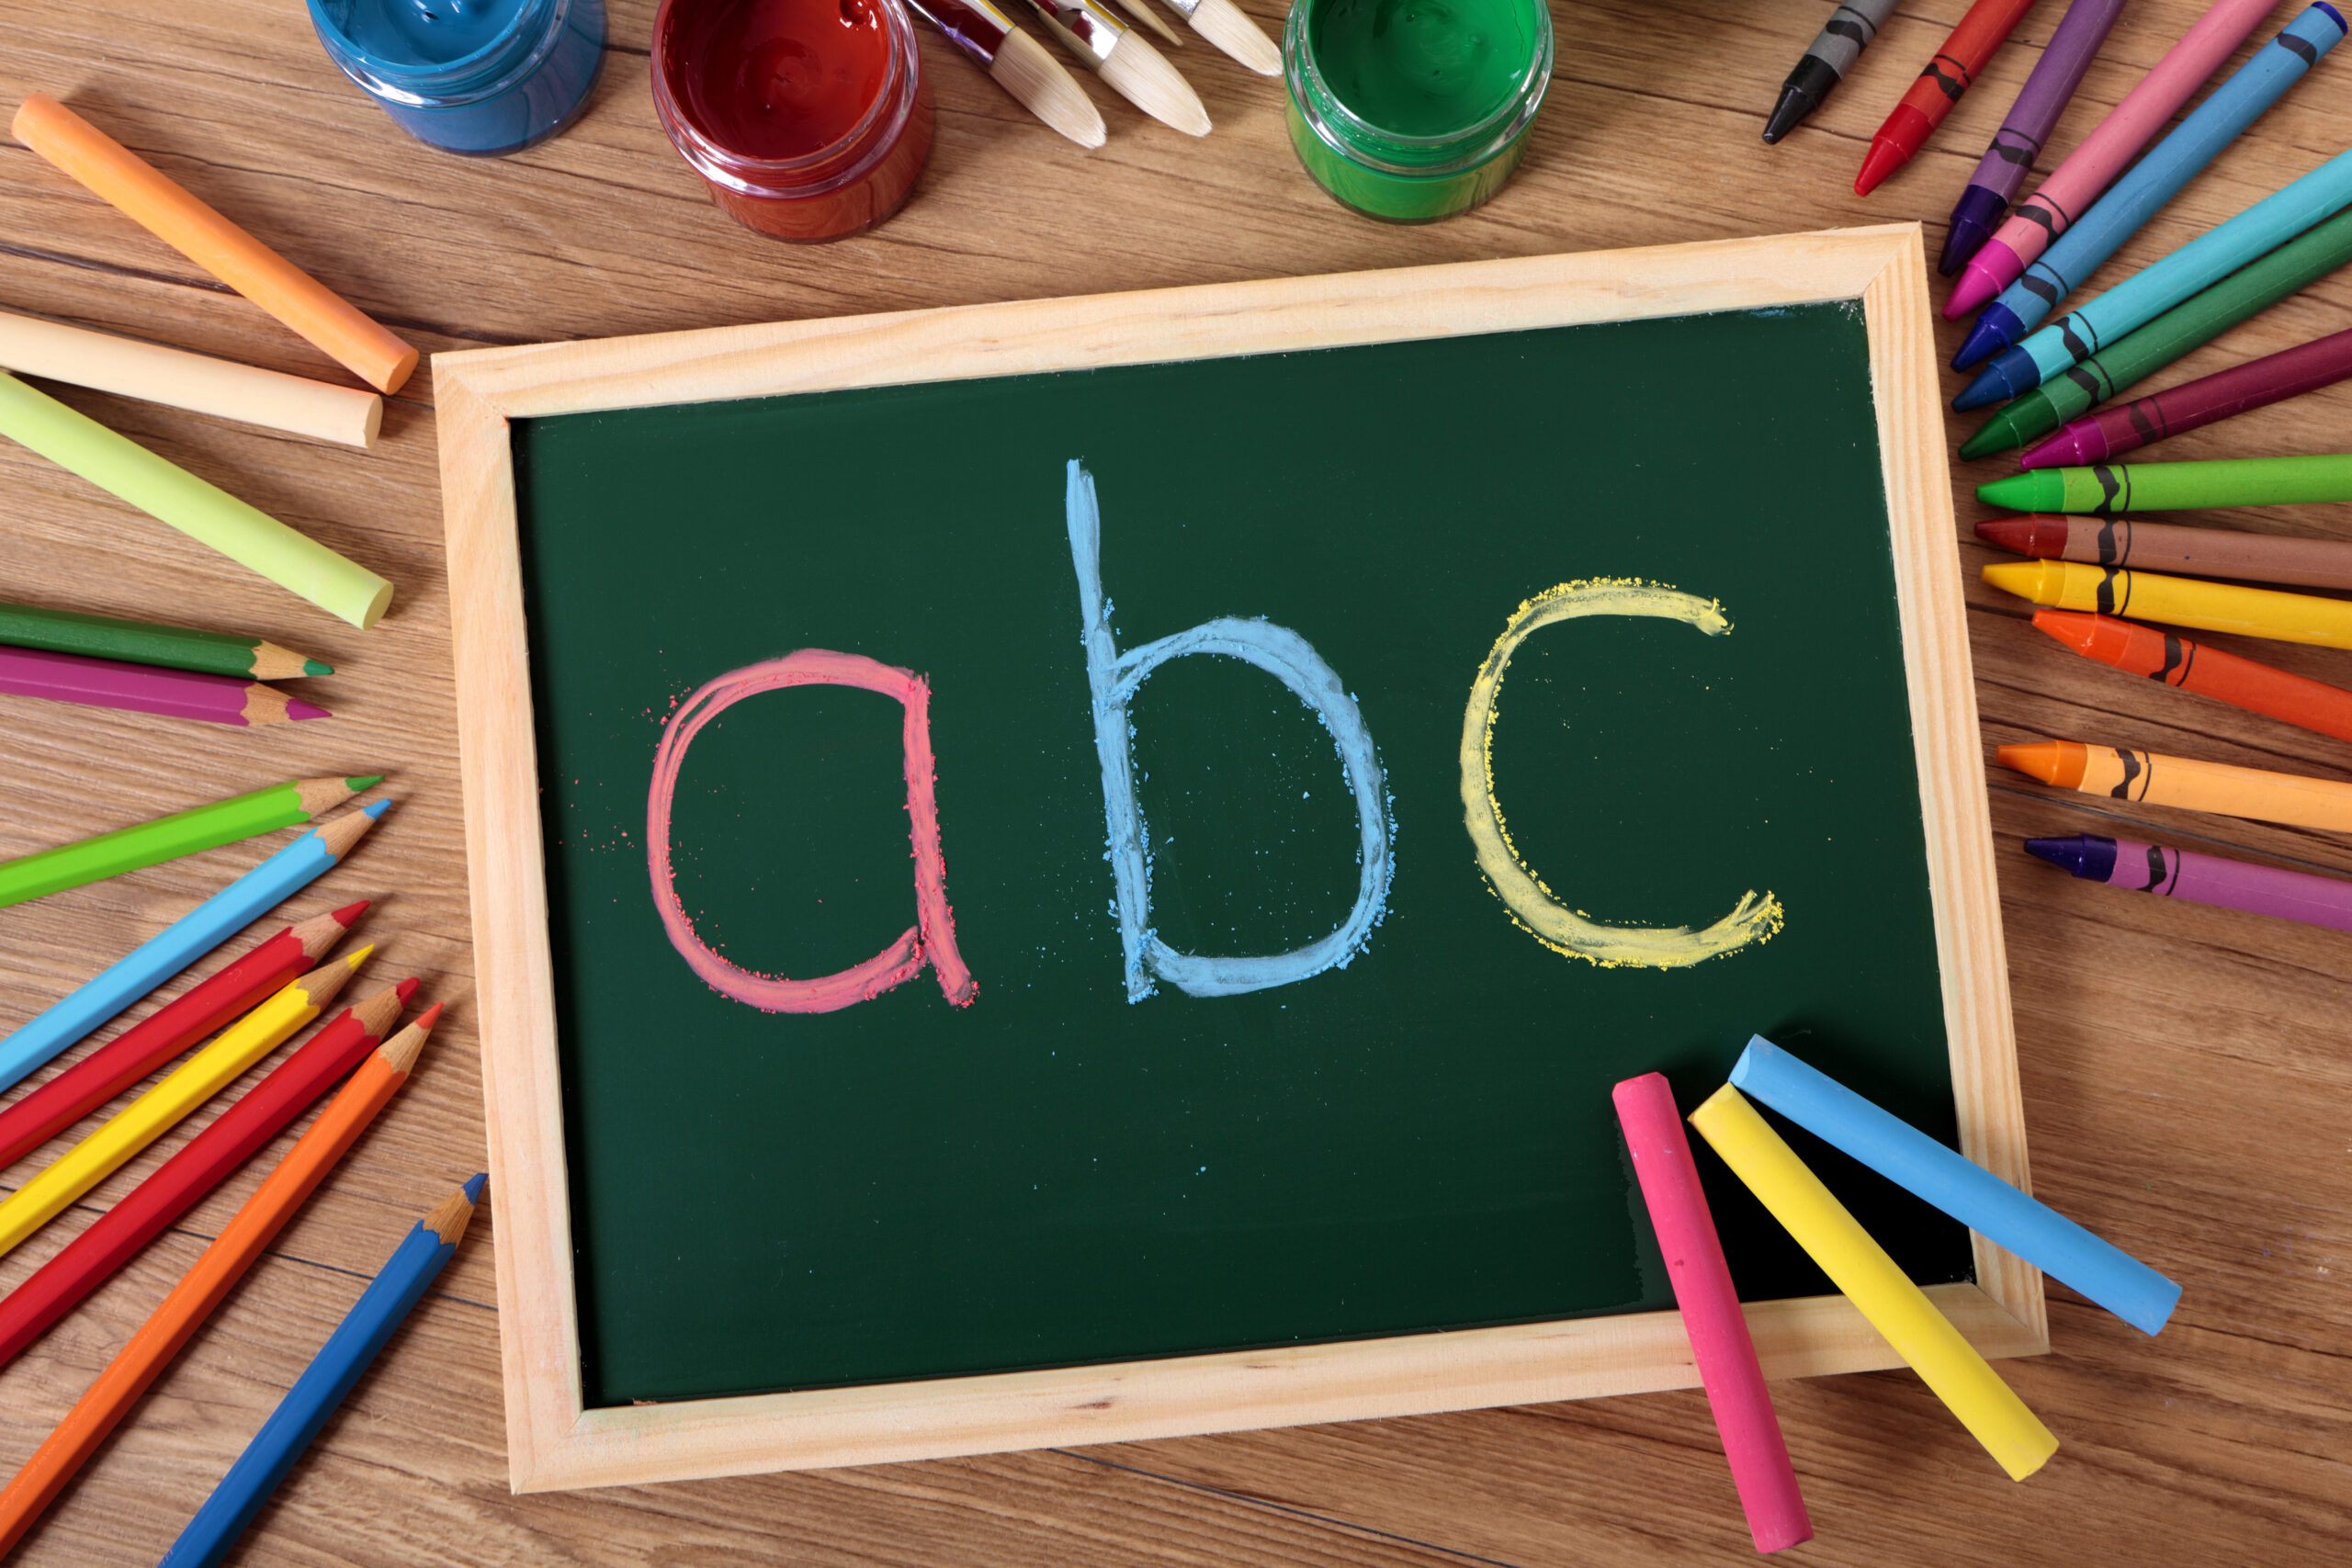 Image of chalkboard with the letters A B C on it